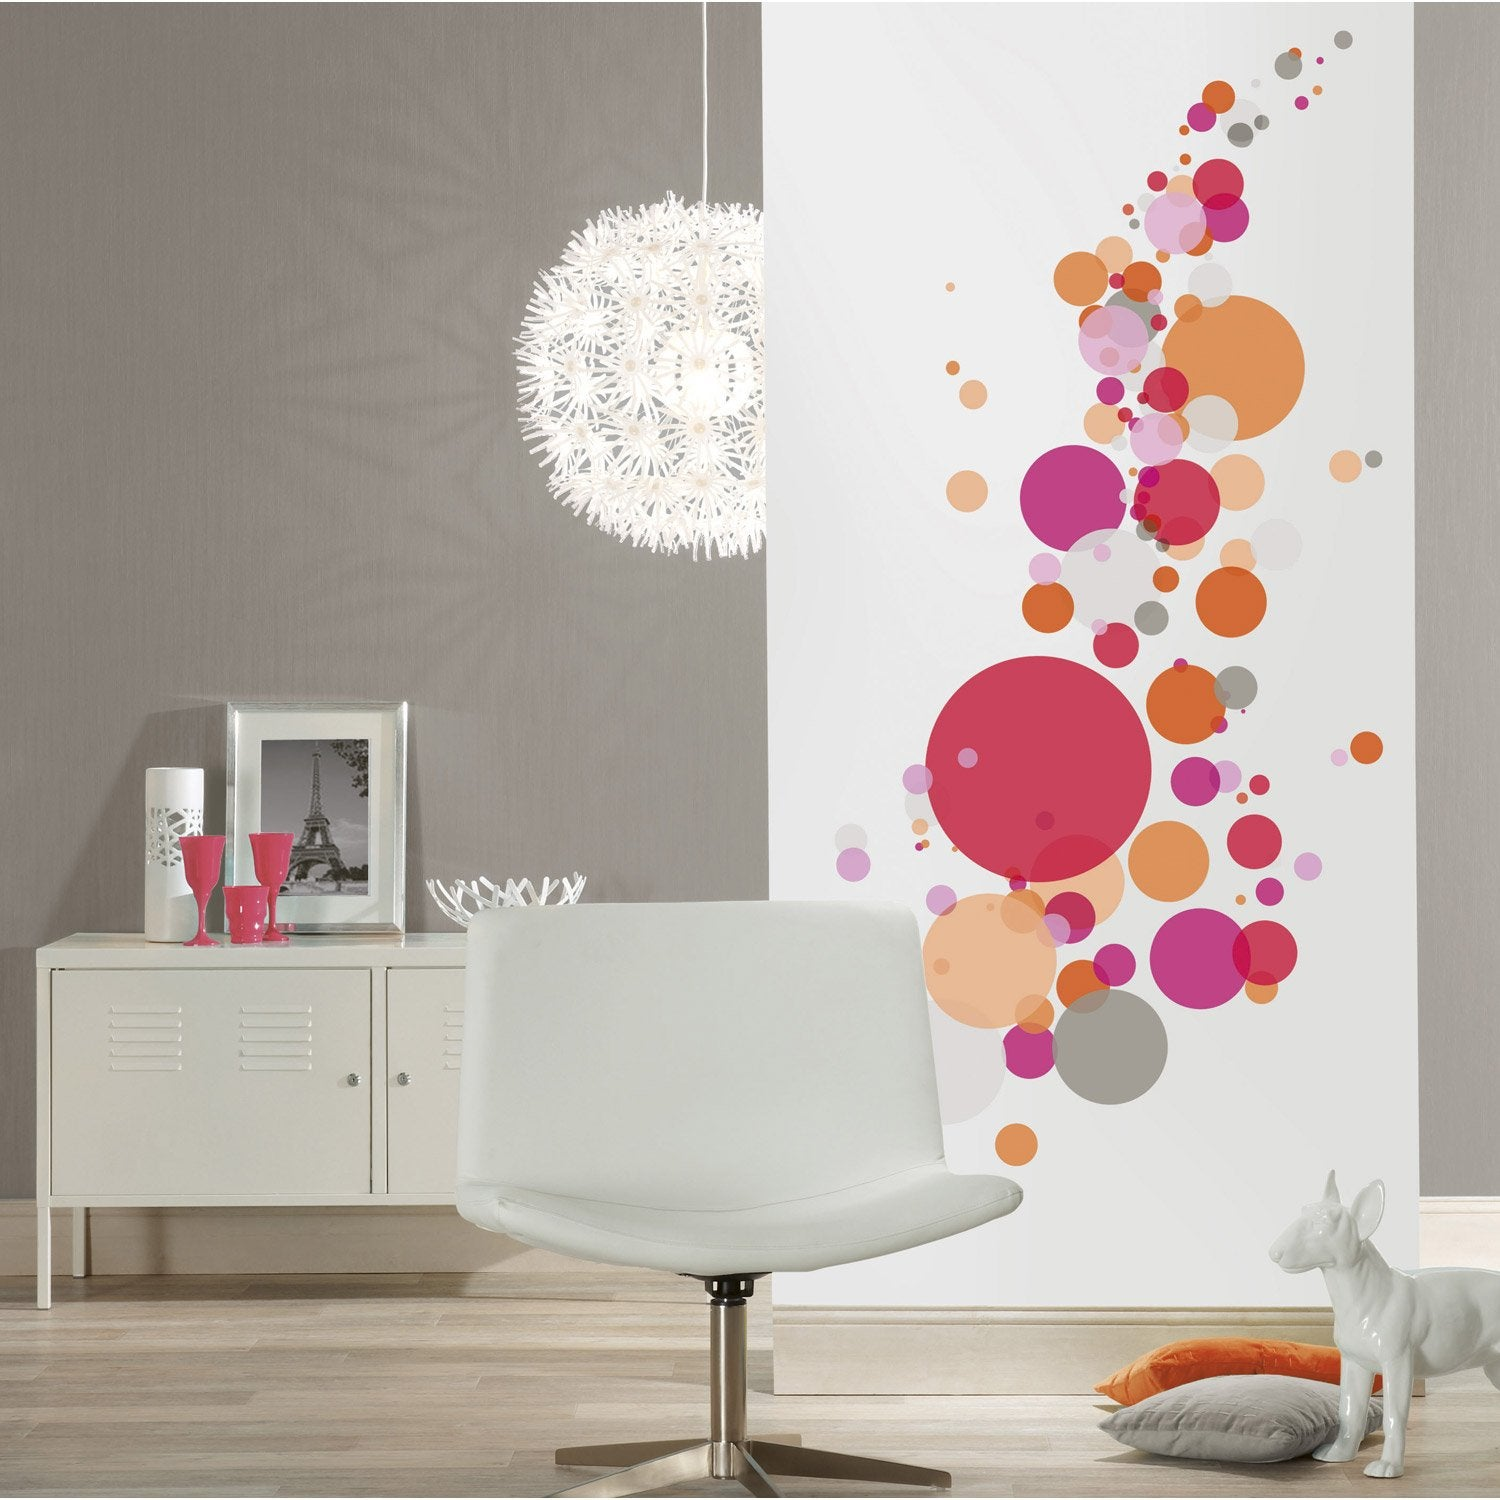 Sticker wizz 47 cm x 67 cm leroy merlin for Deco porte leroy merlin